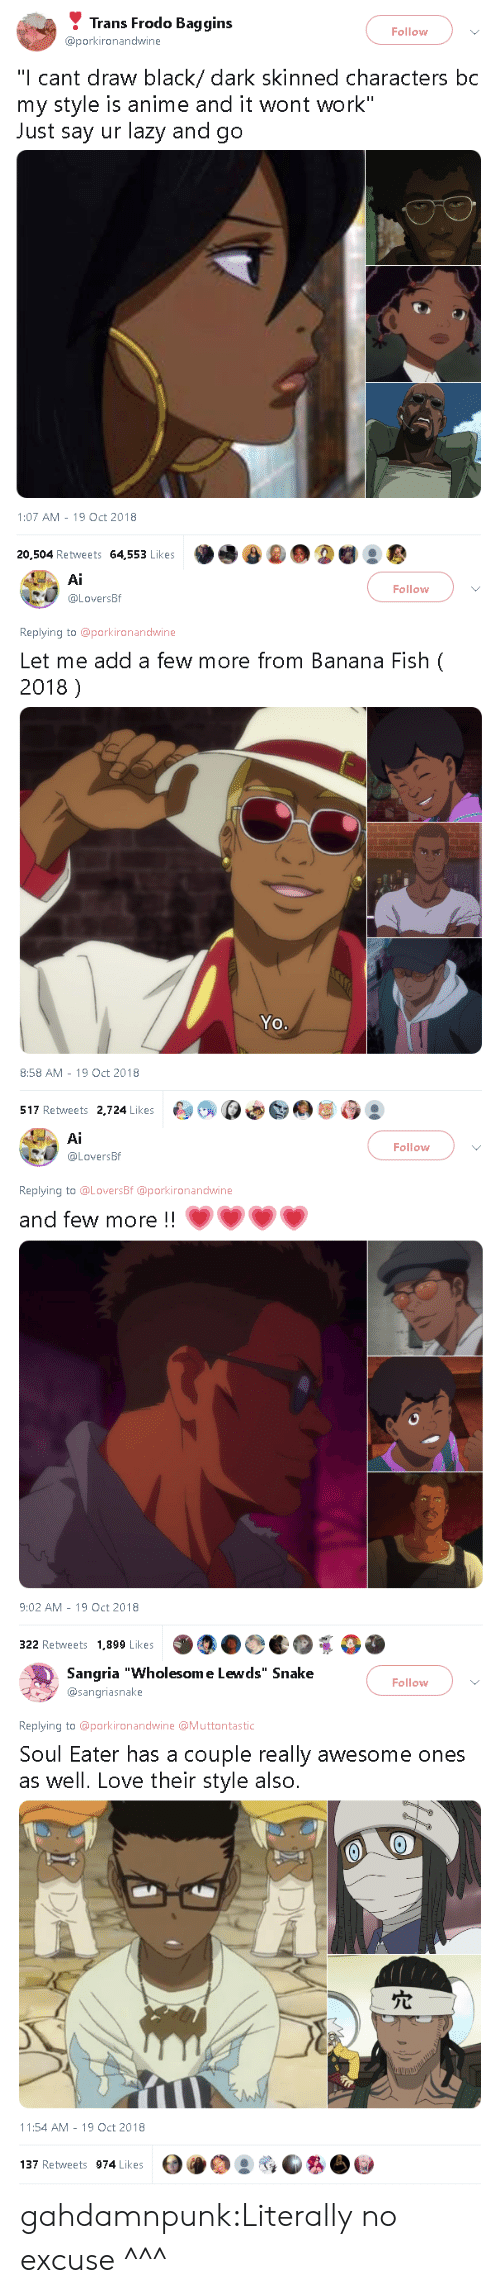 """Anime, Lazy, and Love: Trans Frodo Baggins  @porkironandwine  Follow  """"I cant draw black/ dark skinned characters bc  my style is anime and it wont work""""  Just say ur lazy and go  1:07 AM-19 Oct 2018  20,504 Retweets 64,553 Likes   Ai  @LoversBf  Follow  Replying to @porkironandwine  Let me add a few more from Banana Fish (  2018)  Yo.  8:58 AM -19 Oct 2018  517 Retweets 2,724 Likes  臼여 ρΦ@@屡ら   Ai  Follow  .U @LoversBf  Replying to @LoversBf @porkironandwine  and few more !!  9:02 AM-19 Oct 2018  322 Retweets 1,899 Likes   Sangria """"Wholesom e Lewds"""" Snake  @sangriasnake  Follow  Replying to @porkironandwine @Muttontastic  Soul Eater has a couple really awesome ones  as well. Love their style also.  穴  hi  11:54 AM-19 Oct 2018  137 Retweets 974 Likes gahdamnpunk:Literally no excuse ^^^"""